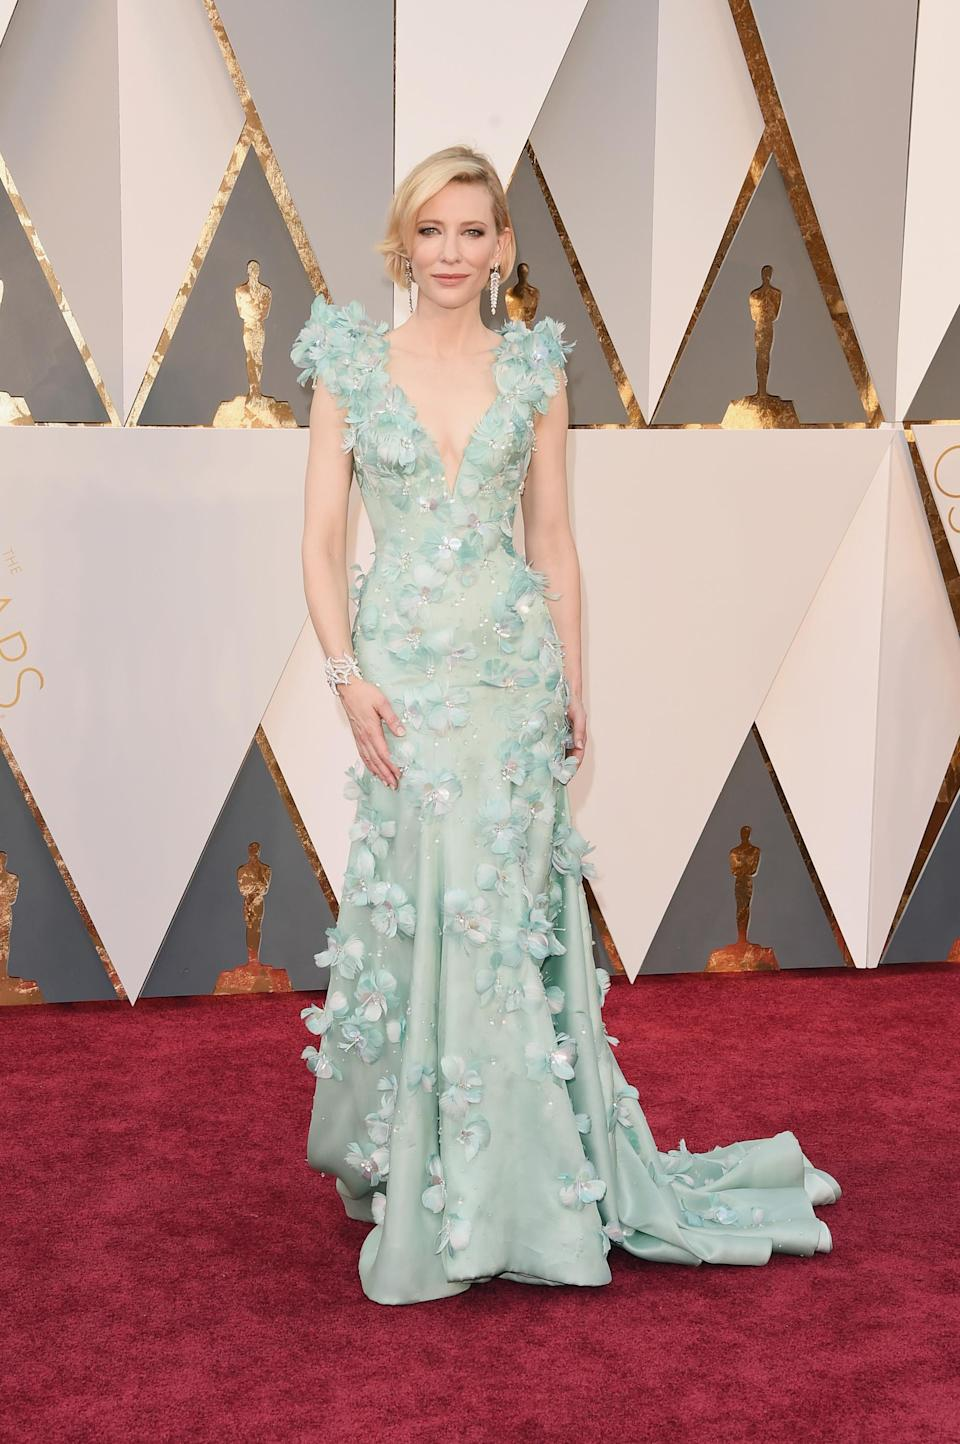 The 'Carol' star wore a mint green beaut of a dress in 2016. Blanchett worked with her longtime stylist, Elizabeth Stewart, in teaming the dramatic gown with minimal jewellery.